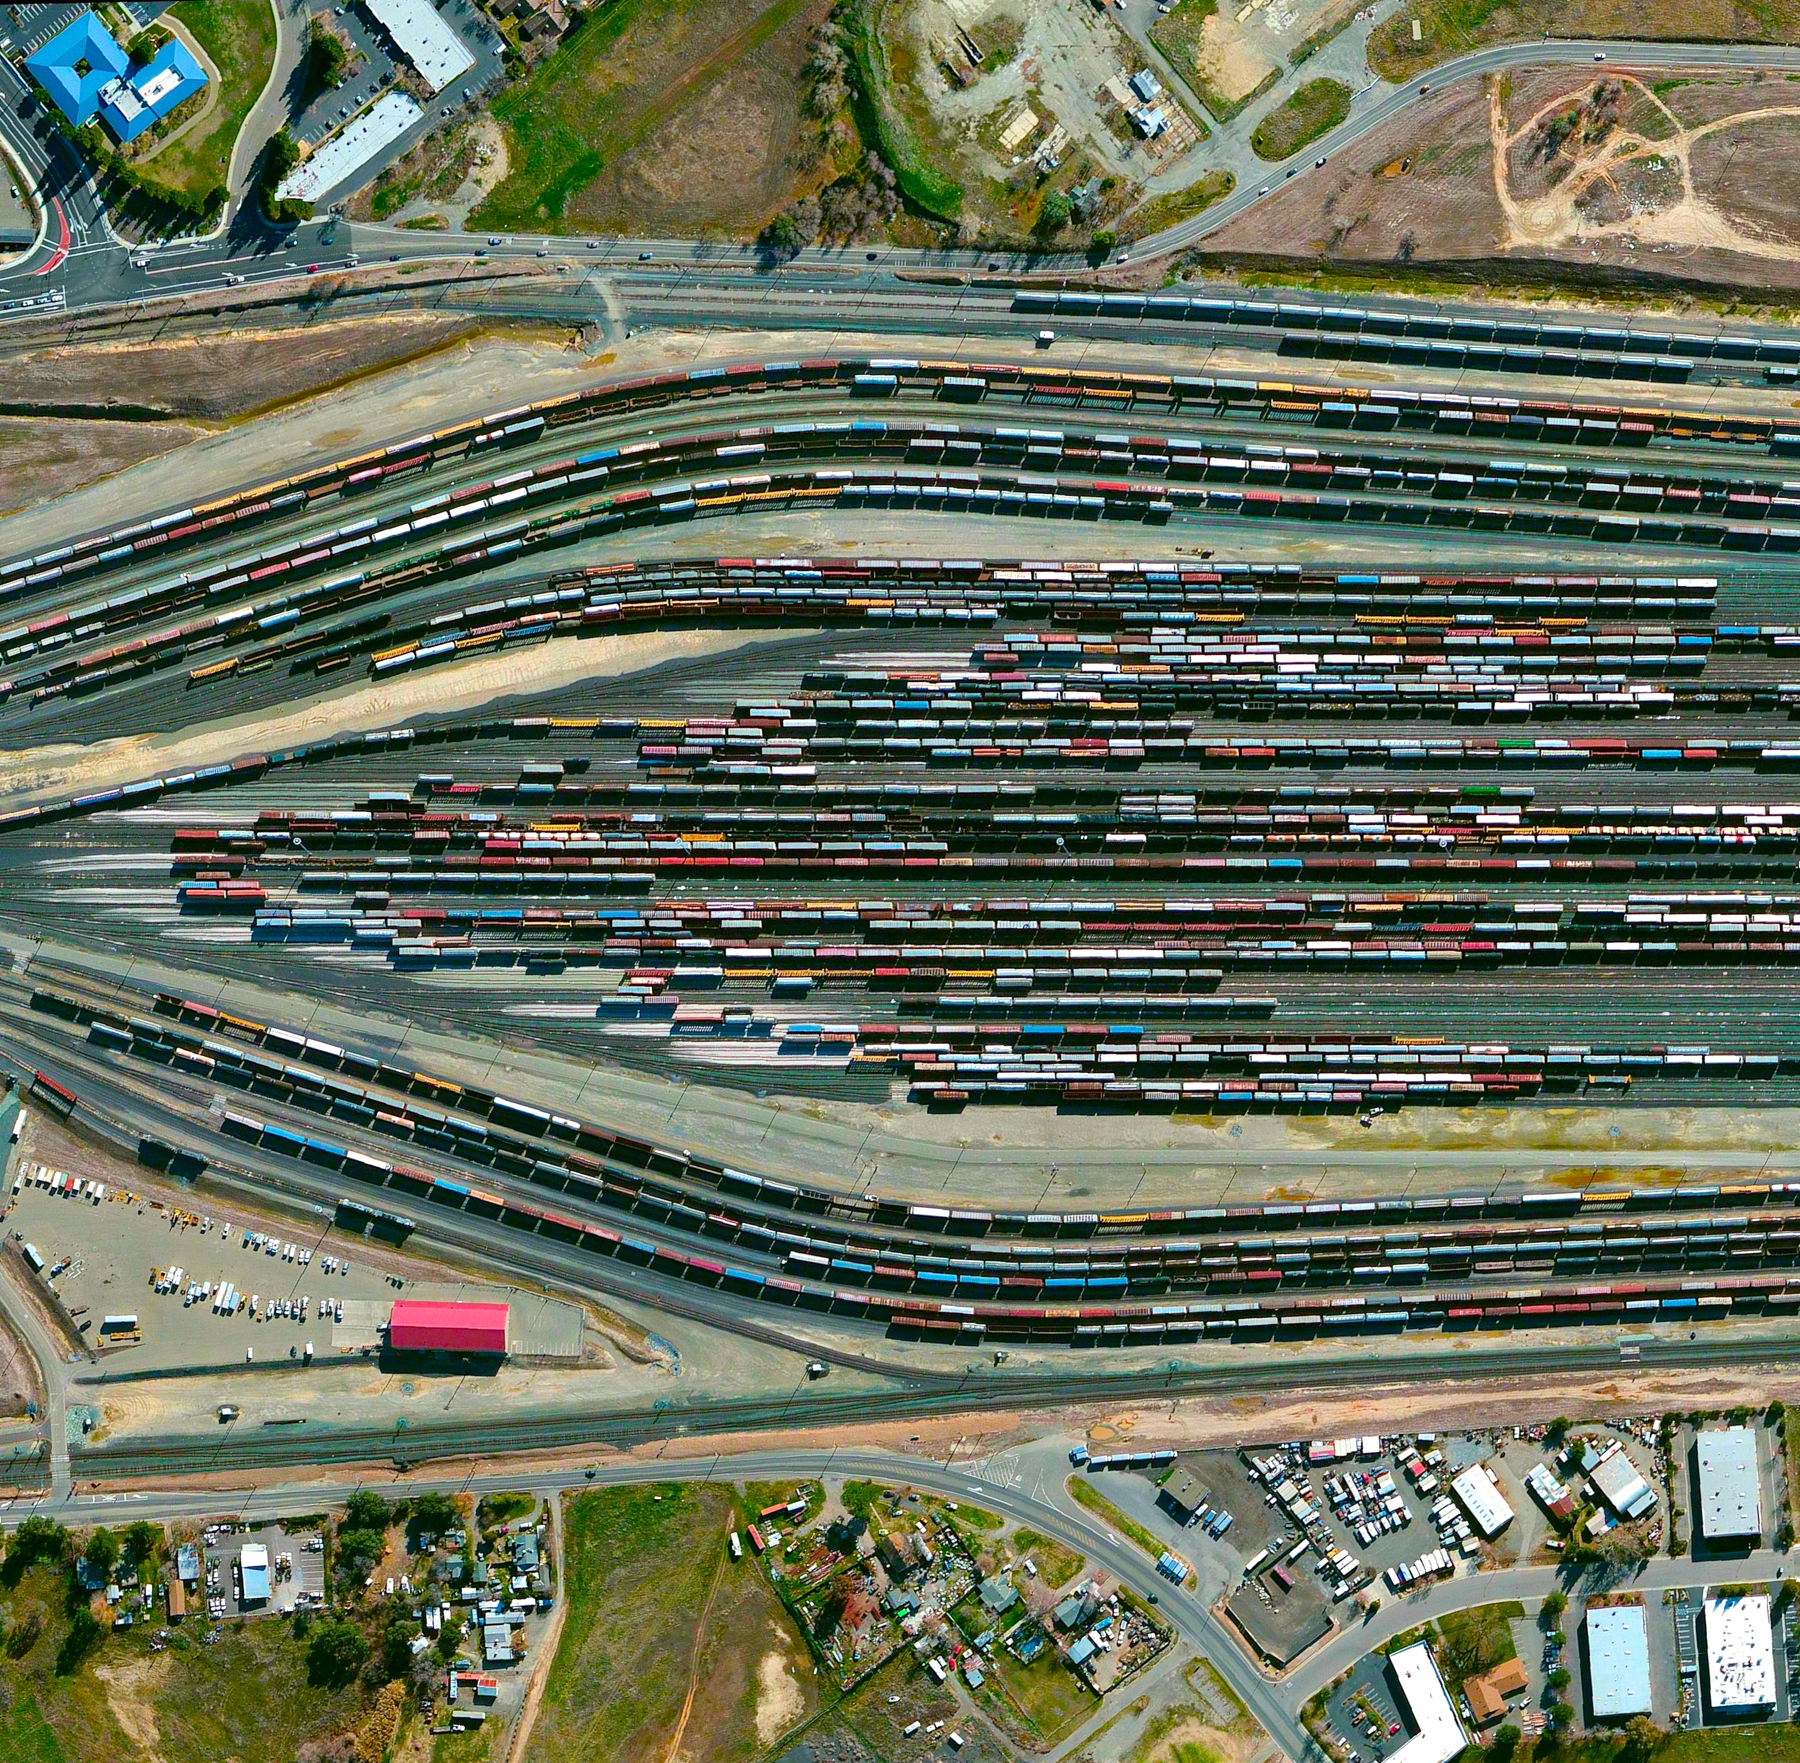 "6/19/2015   Roseville Yard   Roseville, California, USA  38°43'14""N, 121°18'58""W     Roseville Yard, located north of Sacramento, California is the largest rail facility on the west coast of the United States. Operated by the Union Pacific Railroad, the yard accommodates approximately 98 percent of all rail traffic in the north of the state."